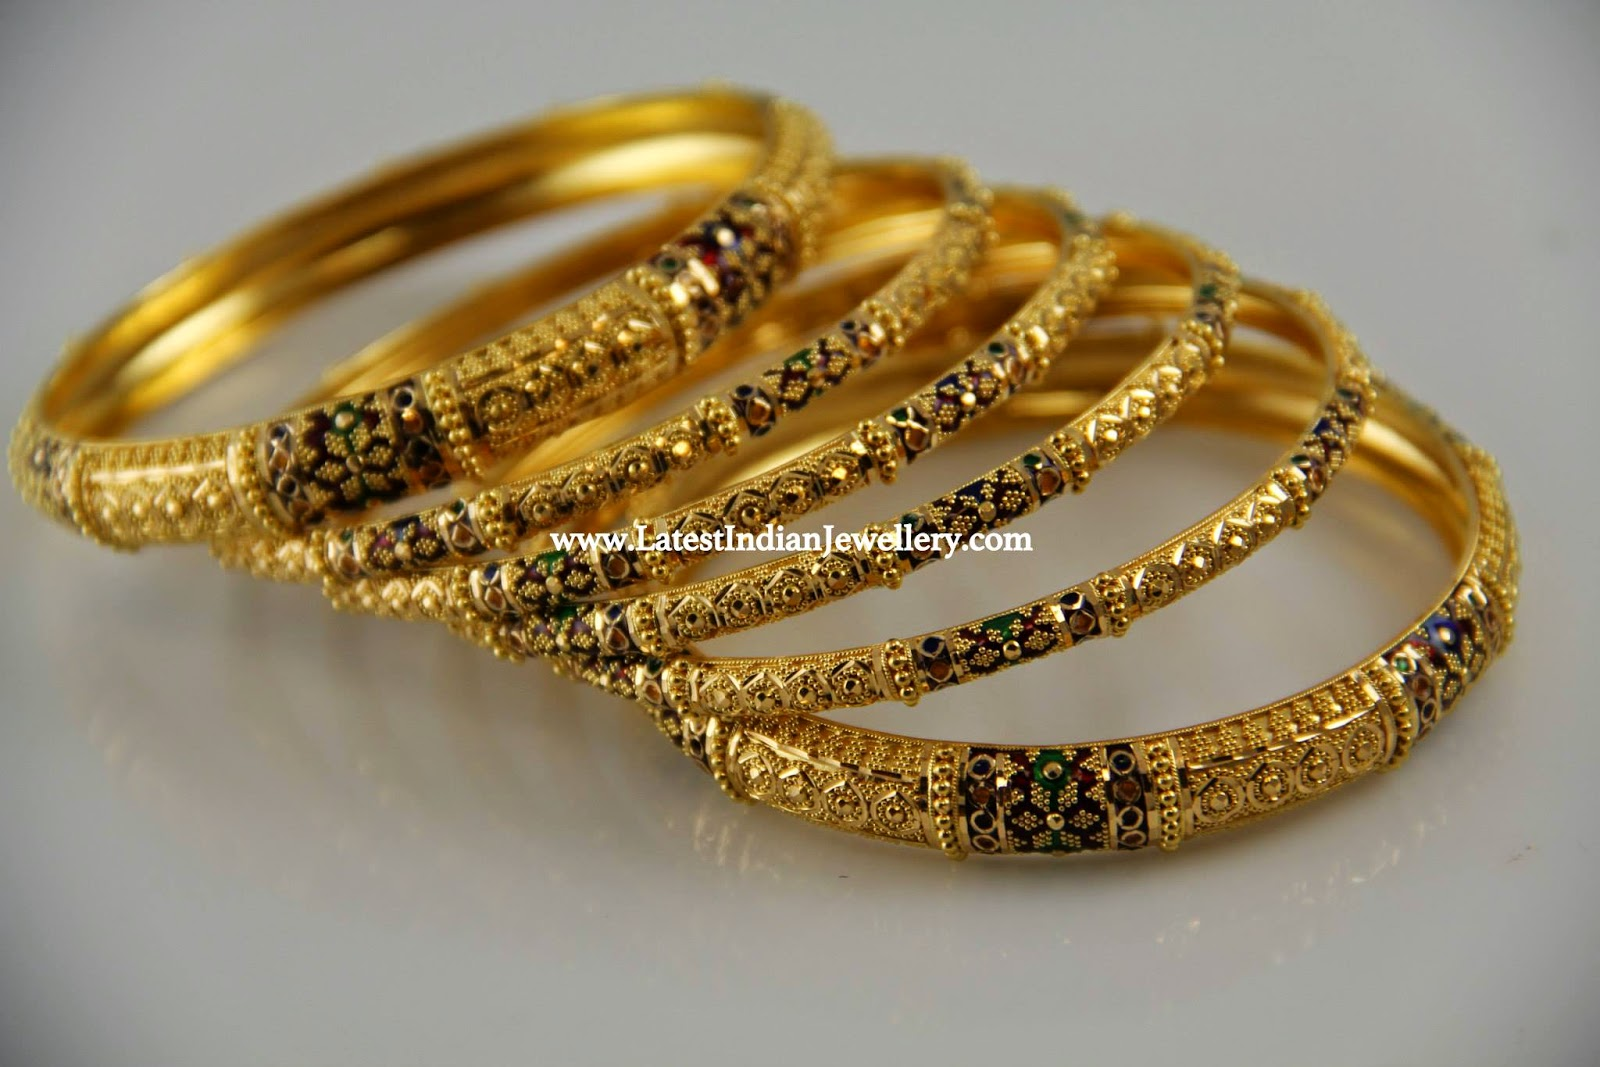 6 Piece Gold Bangles Set